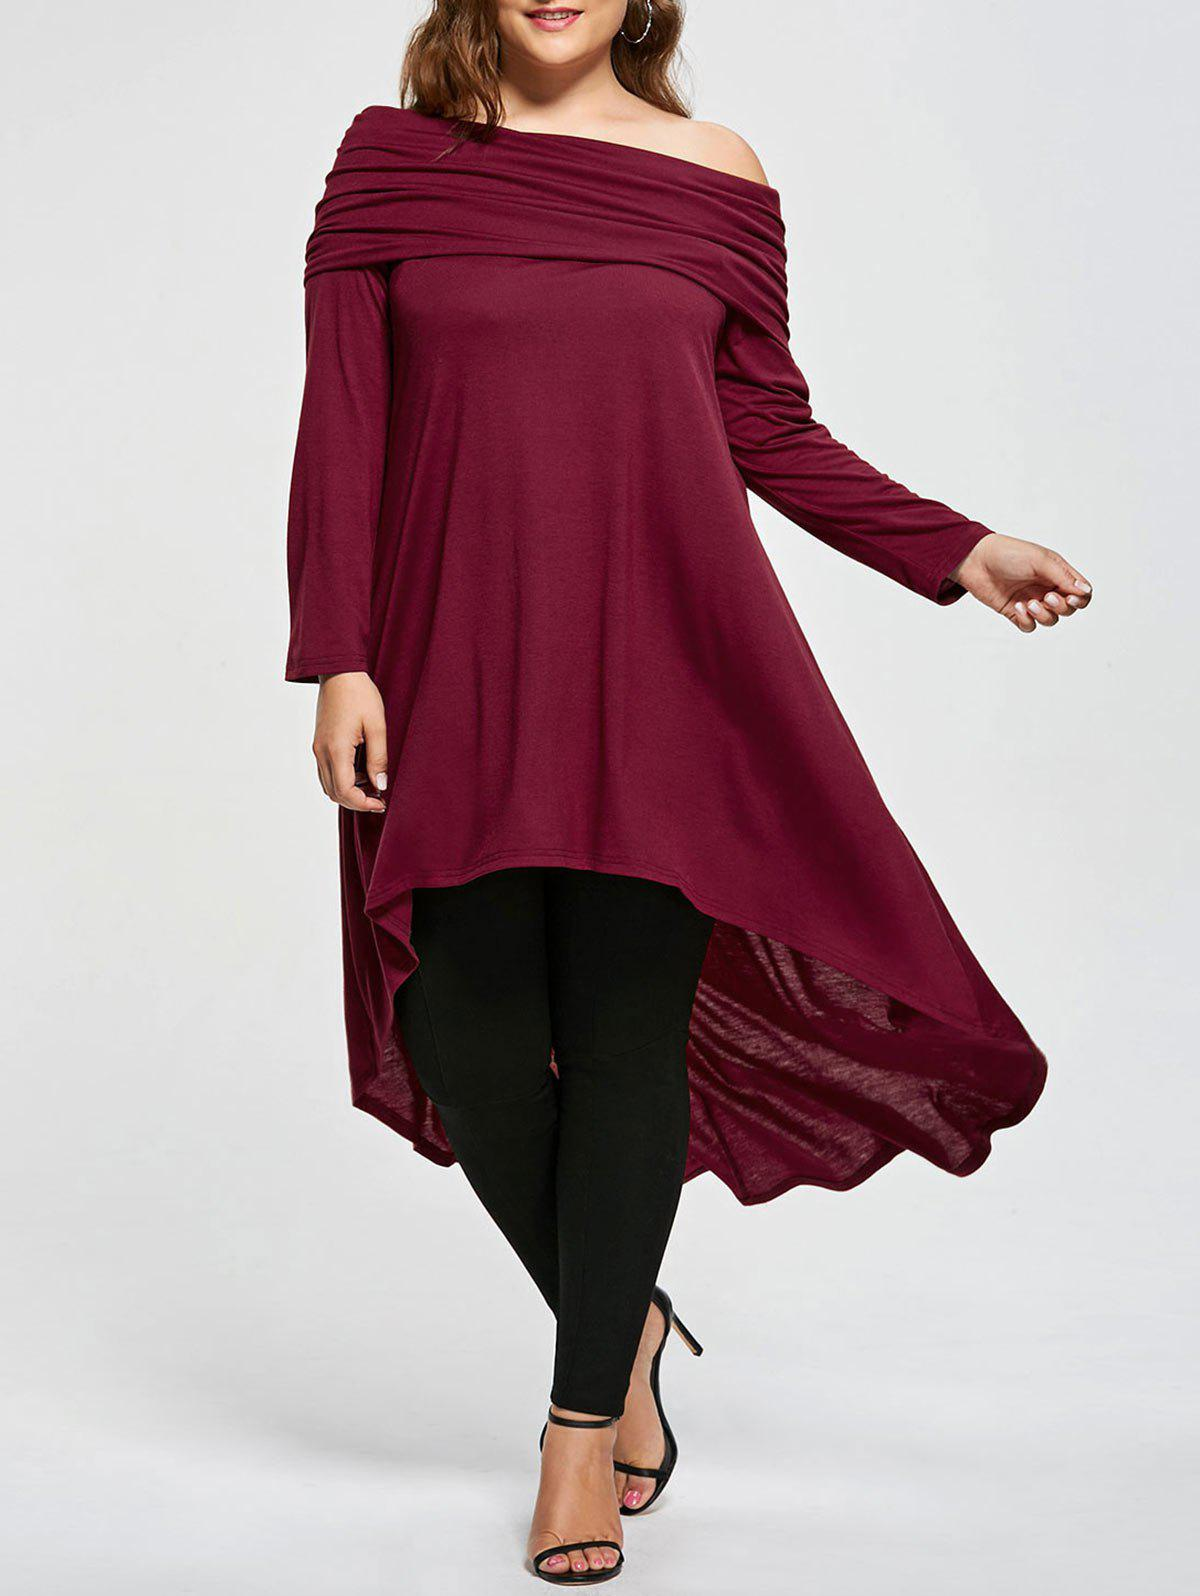 Plus Size Skew Neck Asymmetric Longline TopWOMEN<br><br>Size: 3XL; Color: WINE RED; Material: Cotton,Polyester; Shirt Length: Long; Sleeve Length: Full; Collar: Skew Collar; Style: Casual; Season: Fall,Spring; Pattern Type: Solid; Weight: 0.5000kg; Package Contents: 1 x T-shirt;